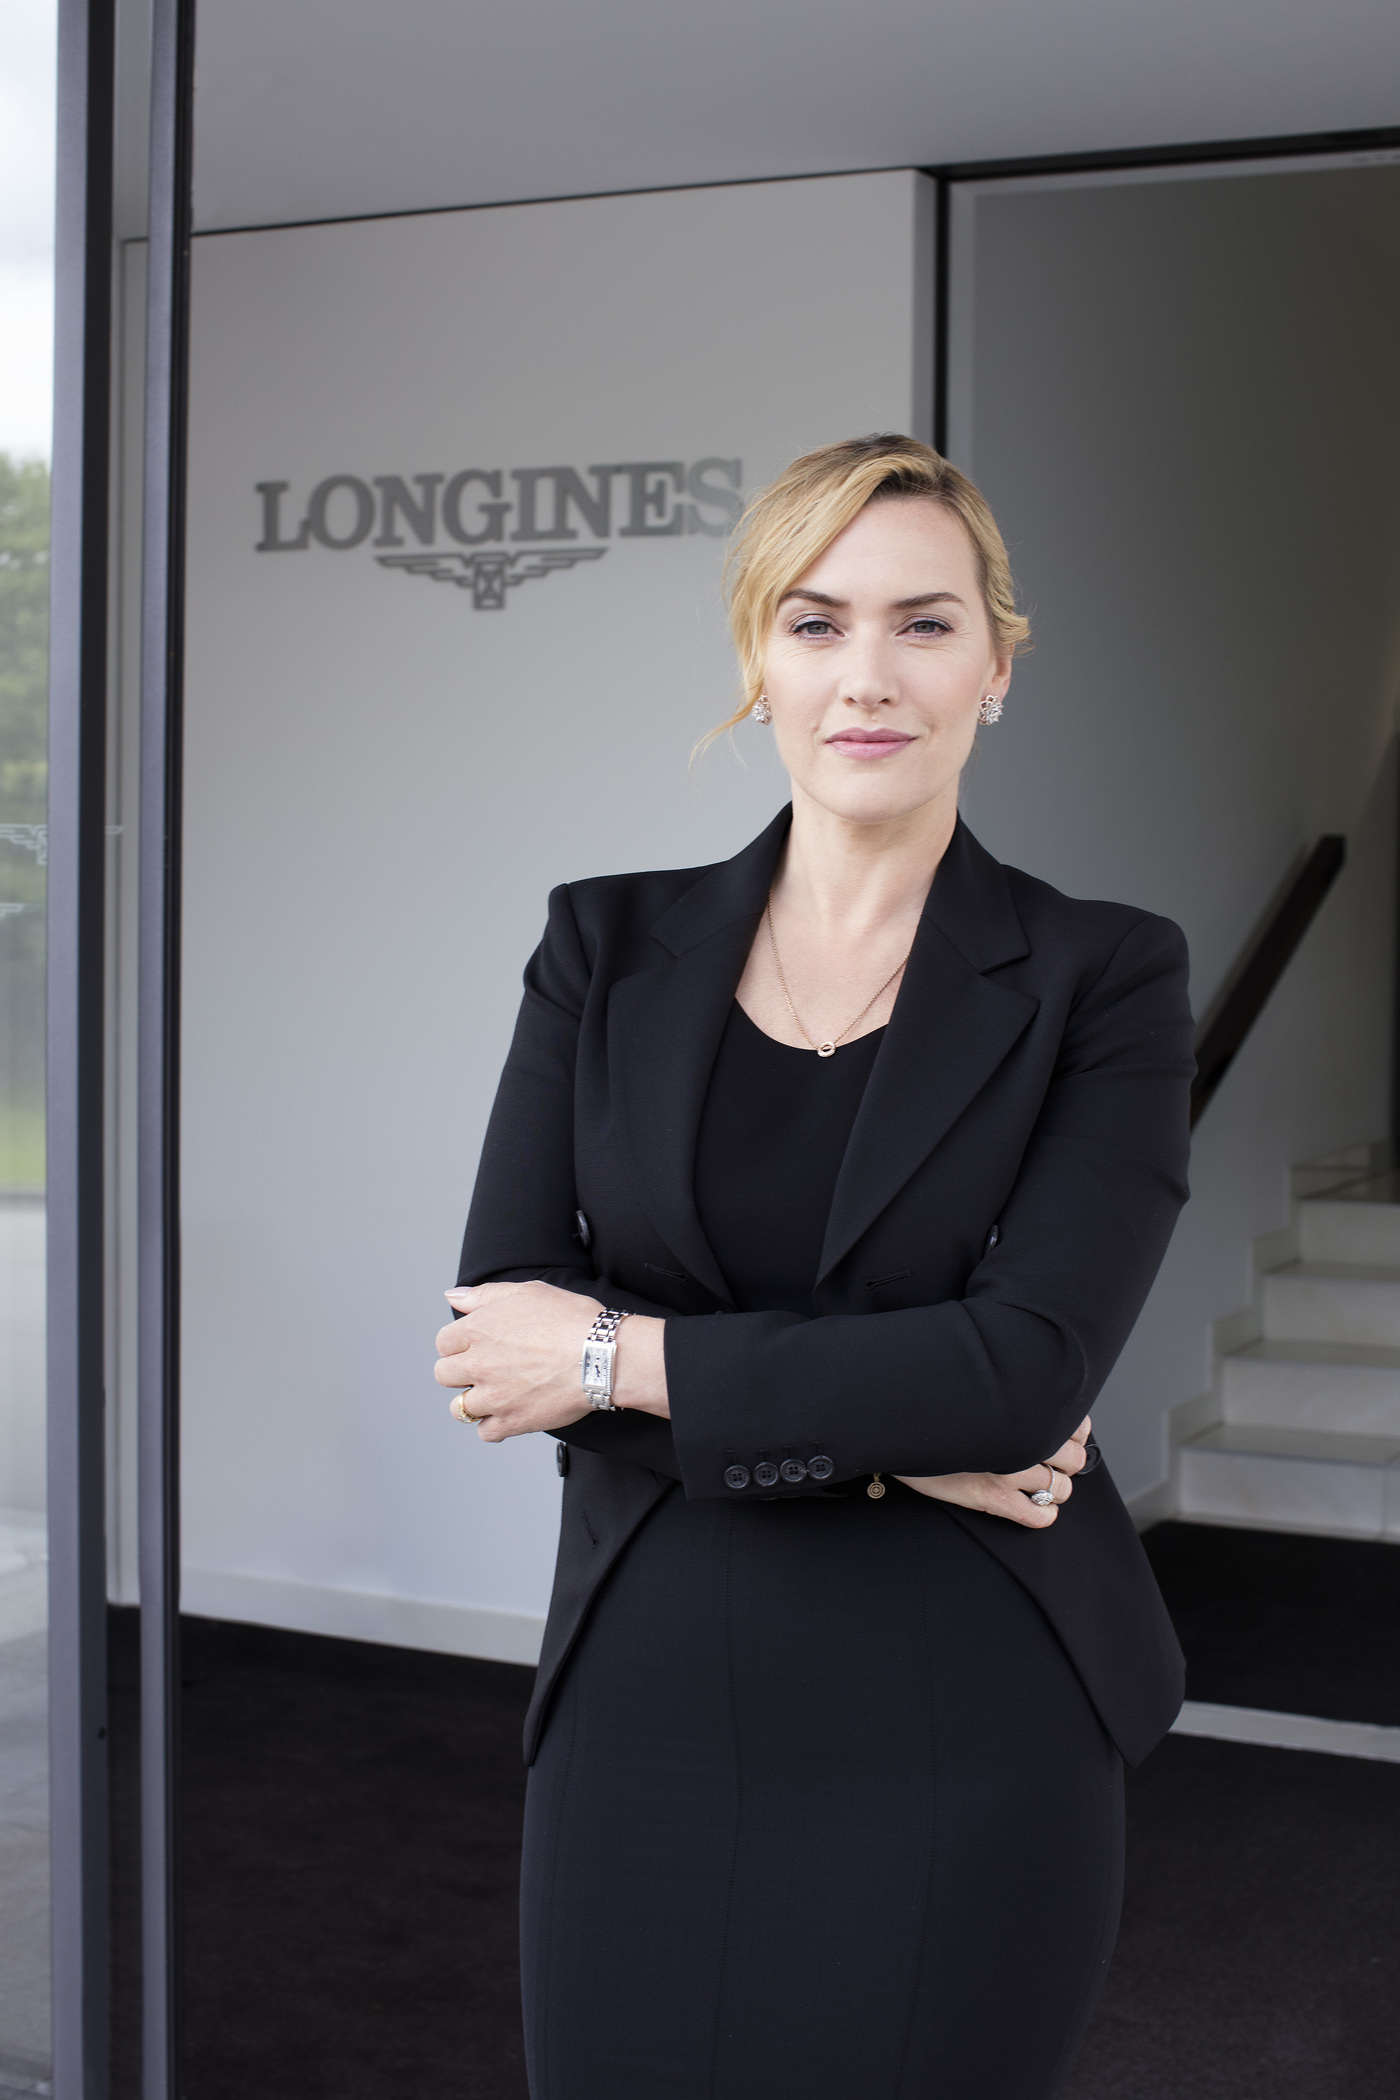 Longines Corporate Event: Longines honoured to welcome Ambassador of Elegance Kate Winslet to Saint-Imier  1